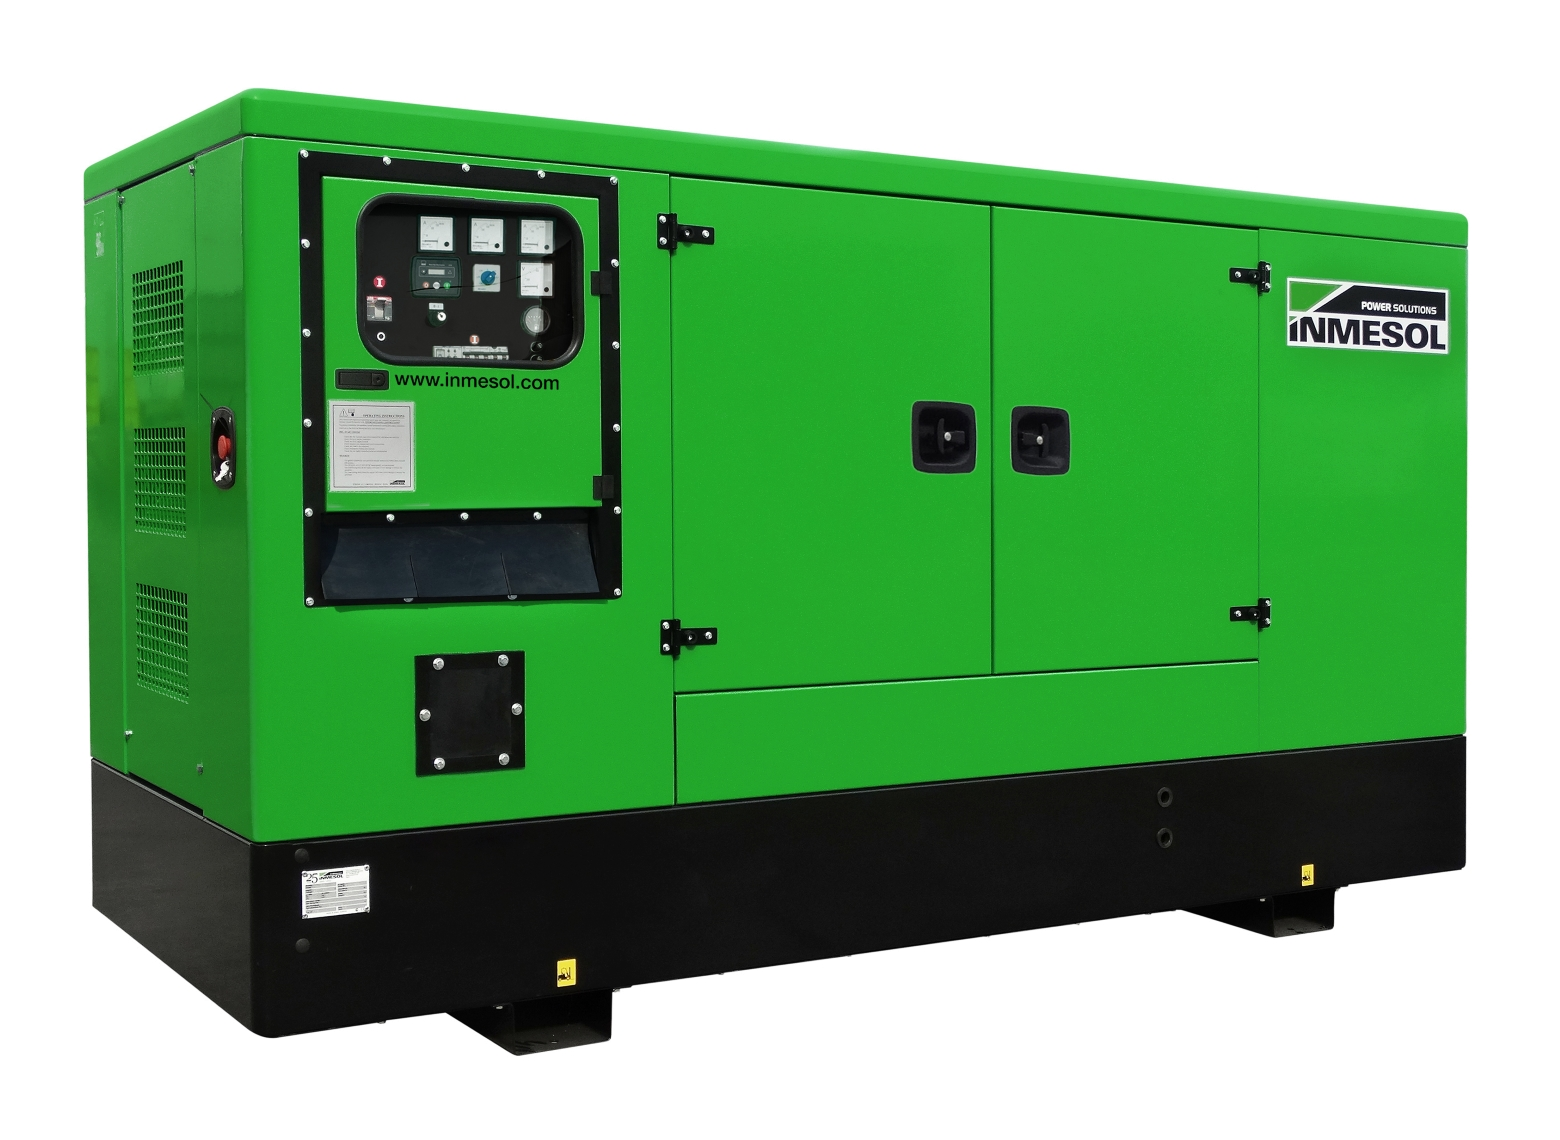 Generator with manual control panel.IP-090 - PERKINS - 1104A-44TG2 - 1.500 R.P.M. | 50 Hz